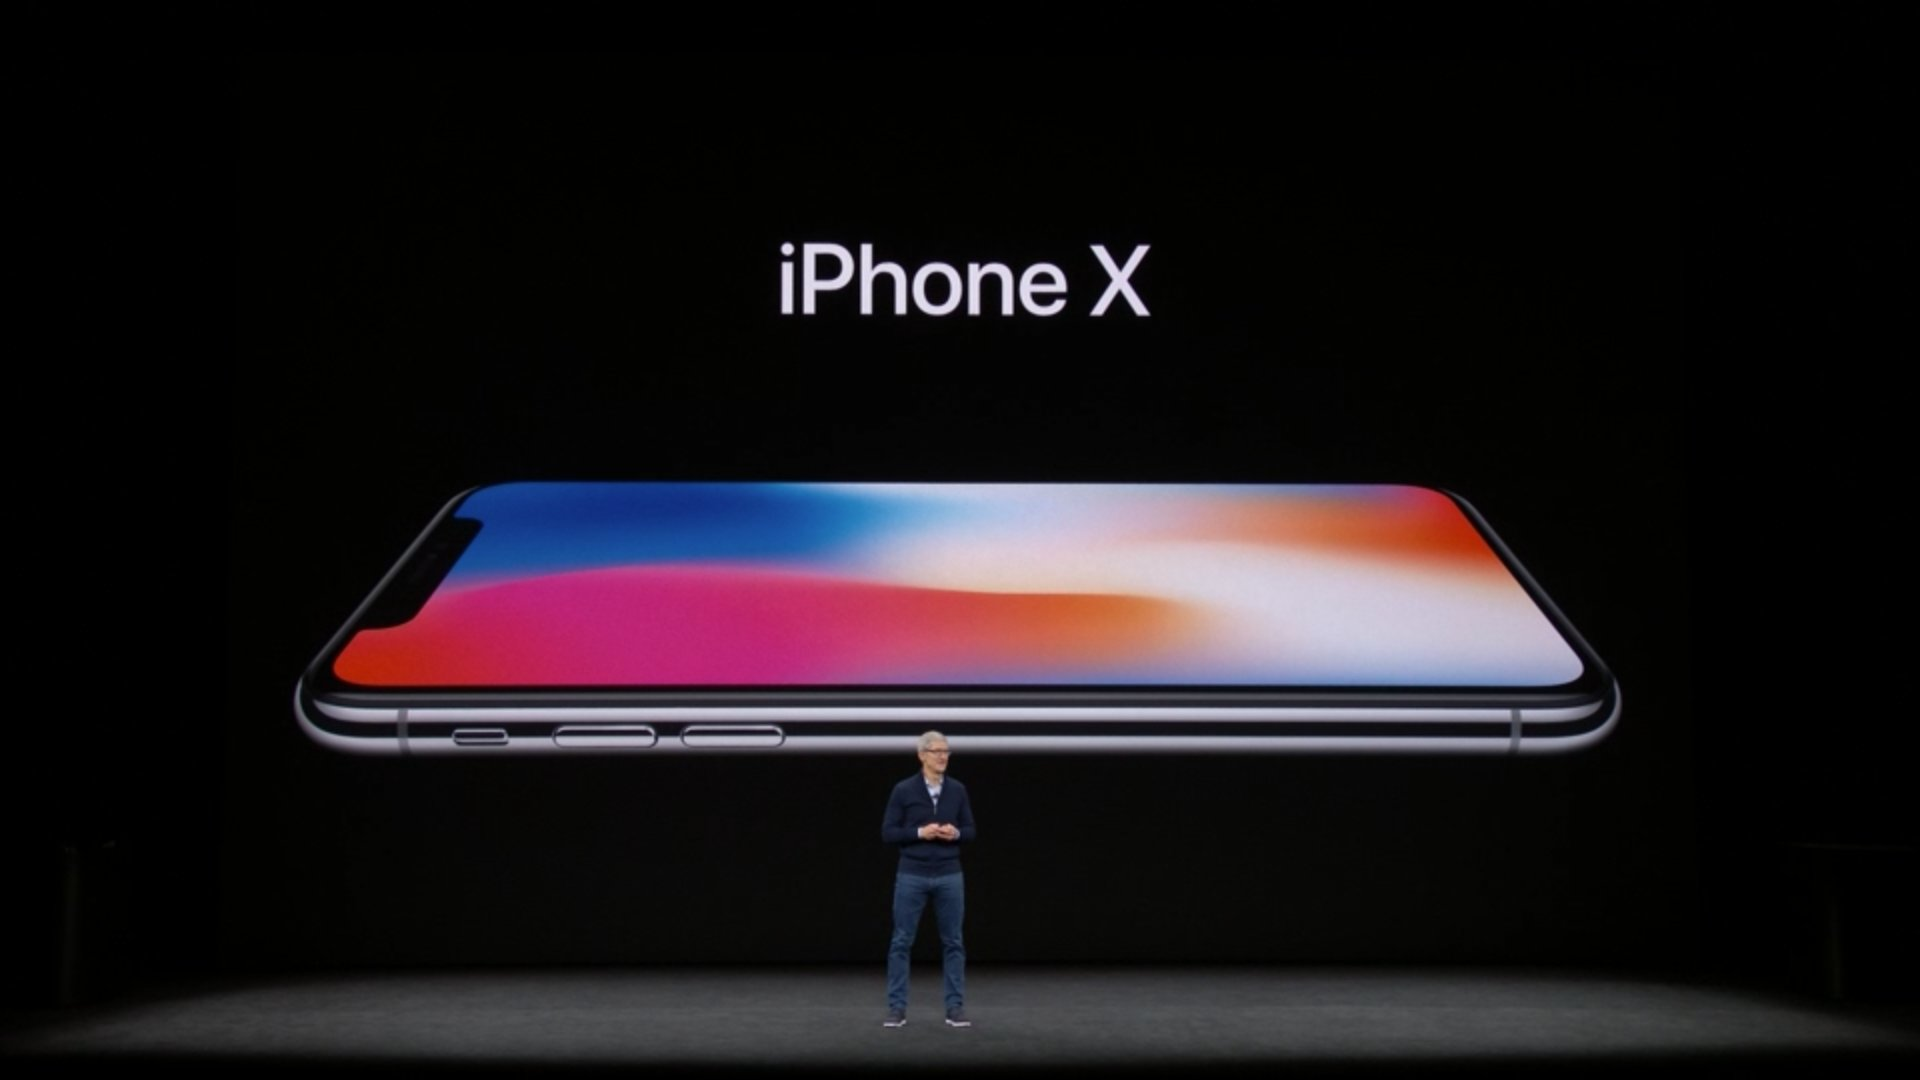 'This is the biggest leap forward since the original iPhone.'  iPhone X introduced at #AppleEvent https://t.co/8nSnZGAjlh